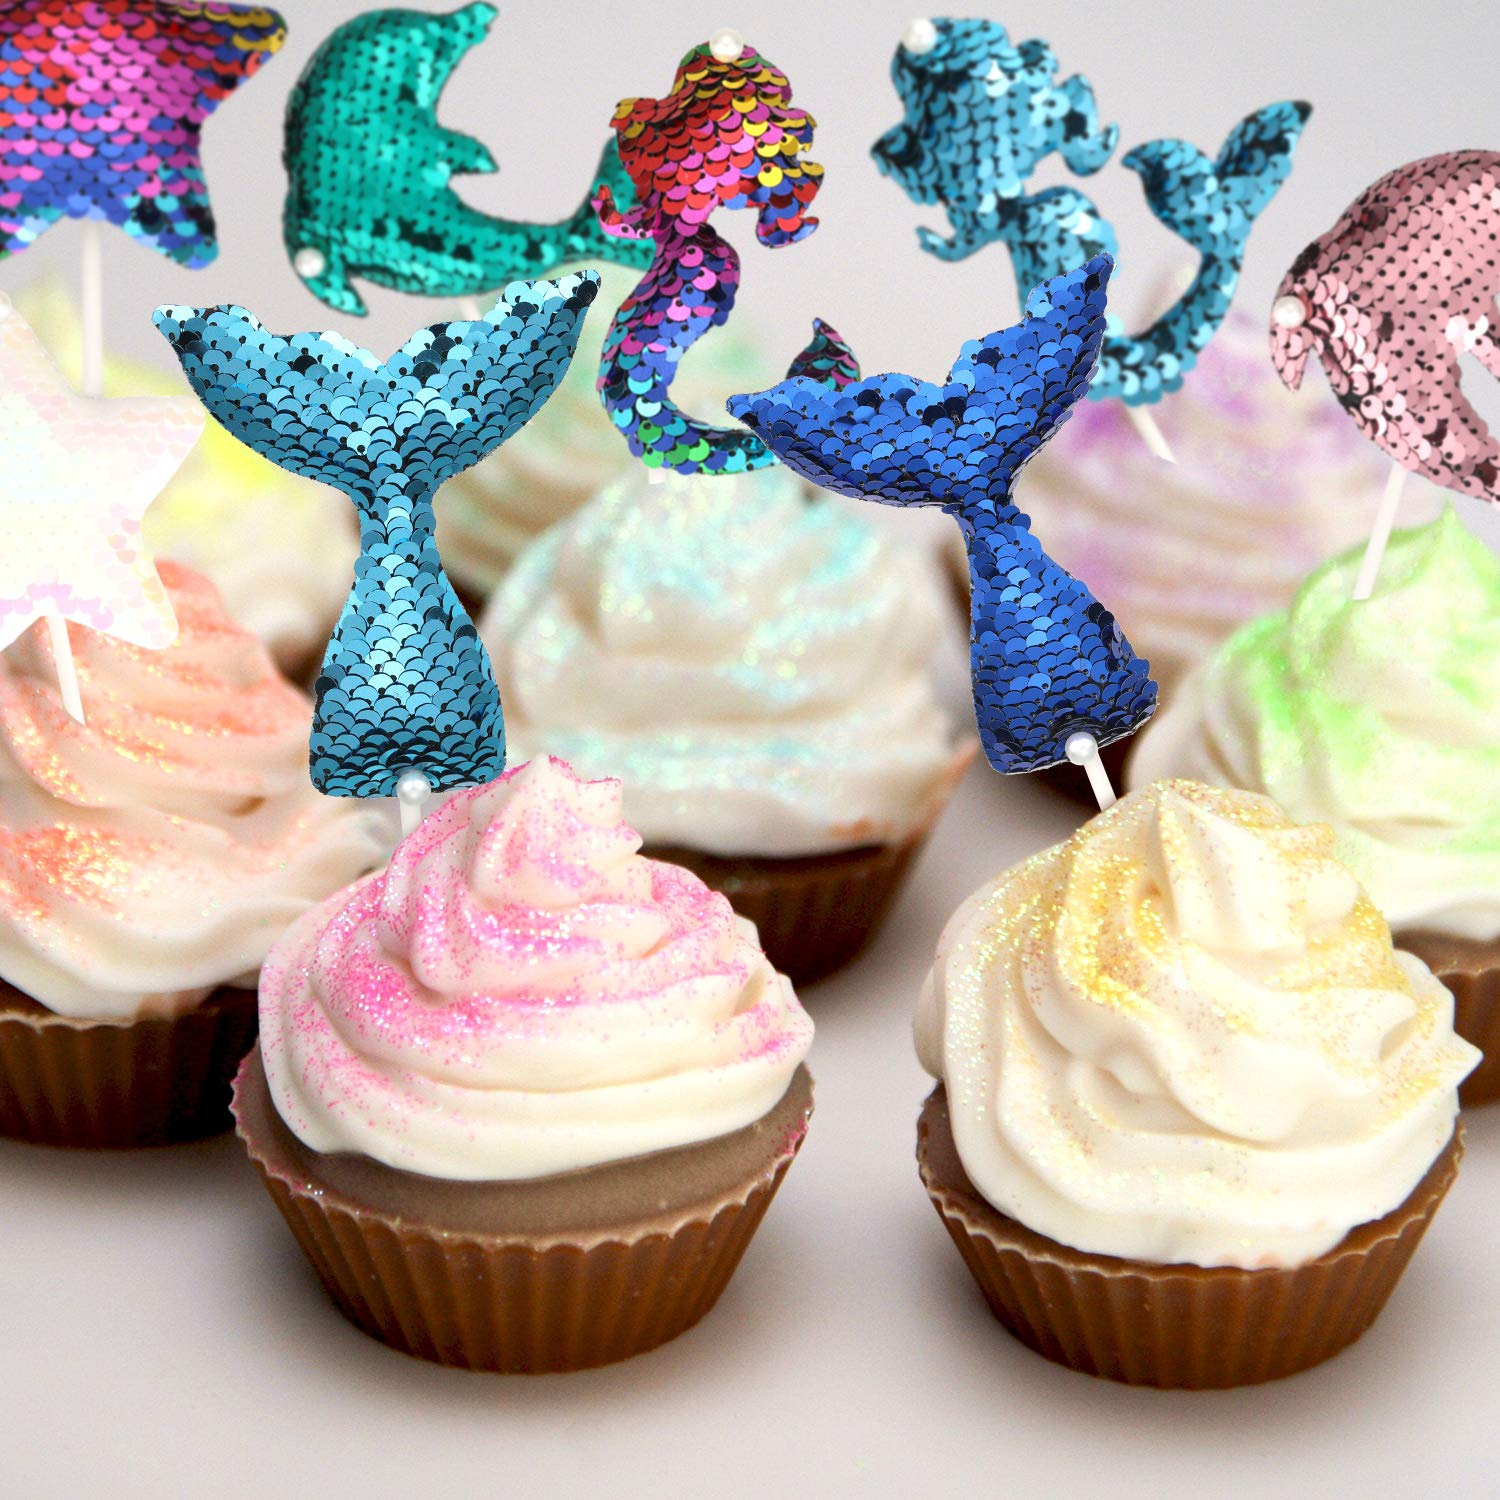 Bridal Shower Sequin Cake Topper Set Reversible Sequin Cake Topper Decoration with Mermaid Tail Star Mermaid Dolphin Design for Baby Shower 18 Pieces Wedding and Birthday Party Supplies